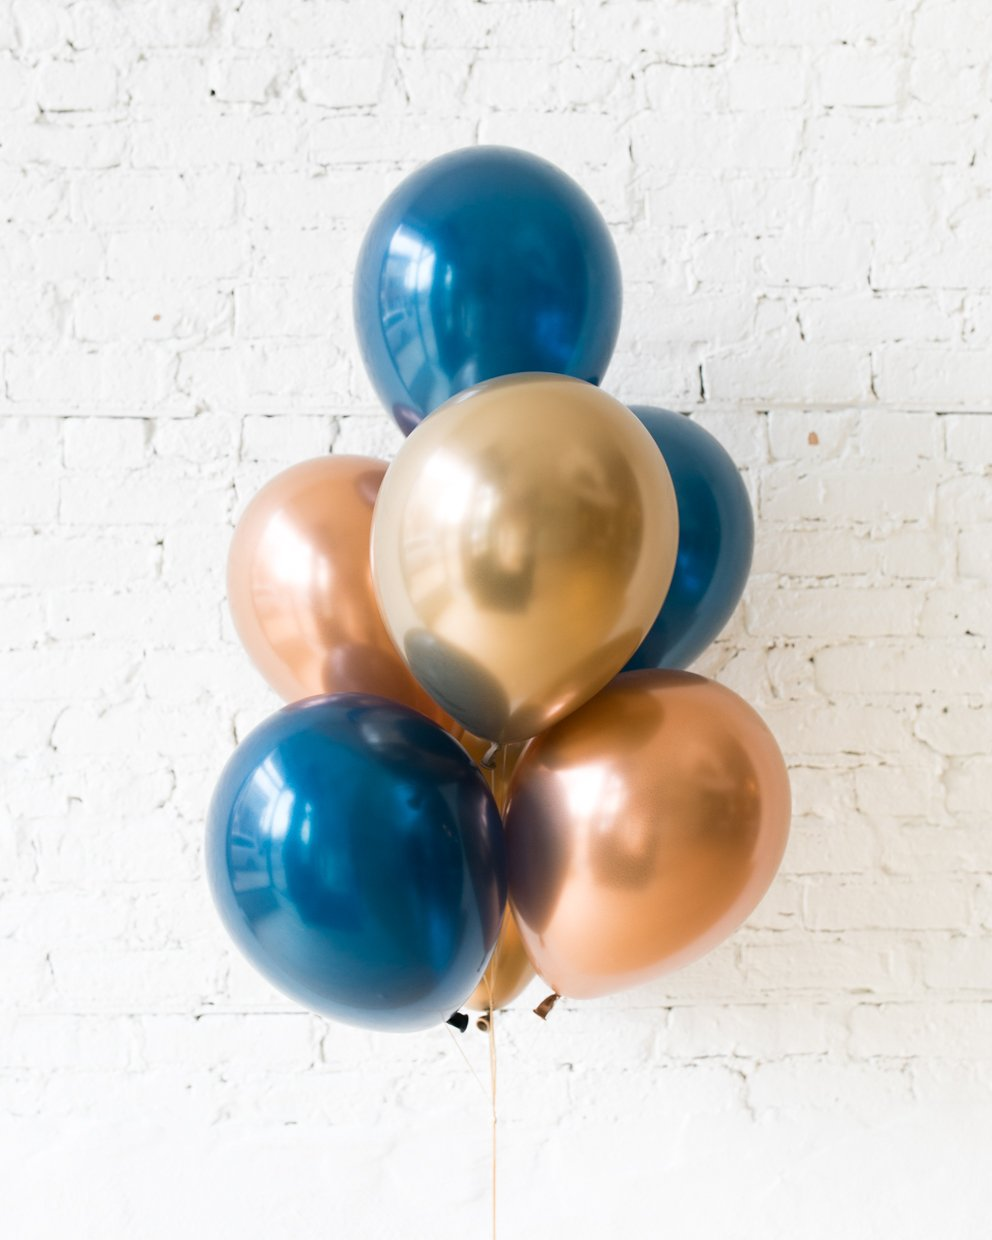 Midnight Copper - 11in Balloons - bouquet of 7